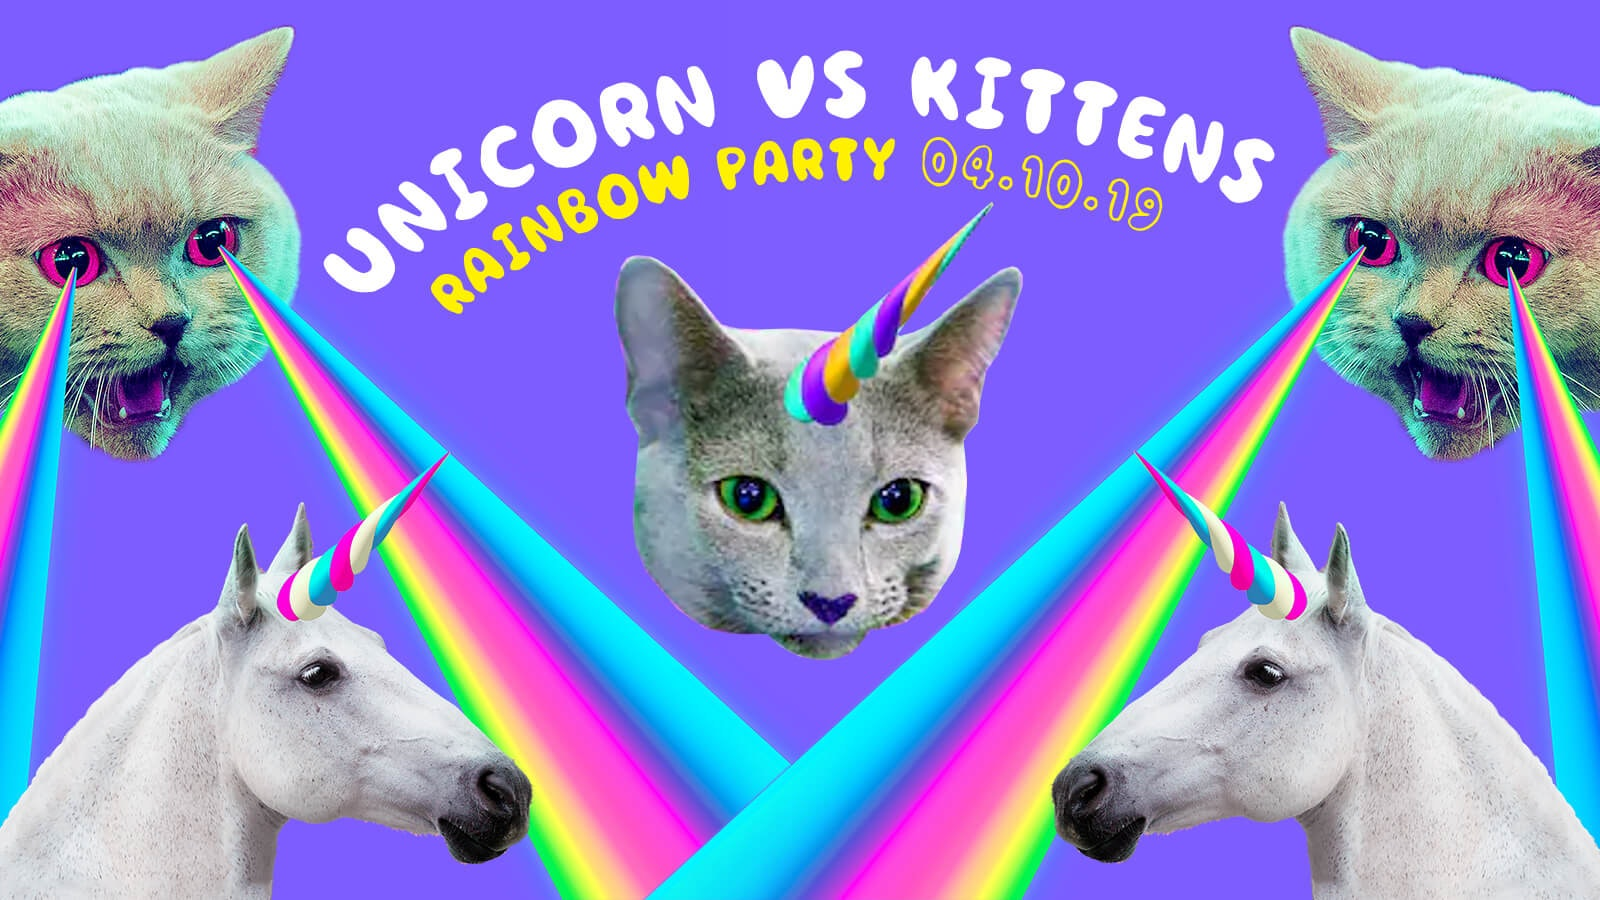 MEDICATION – UNICORNS VS KITTENS